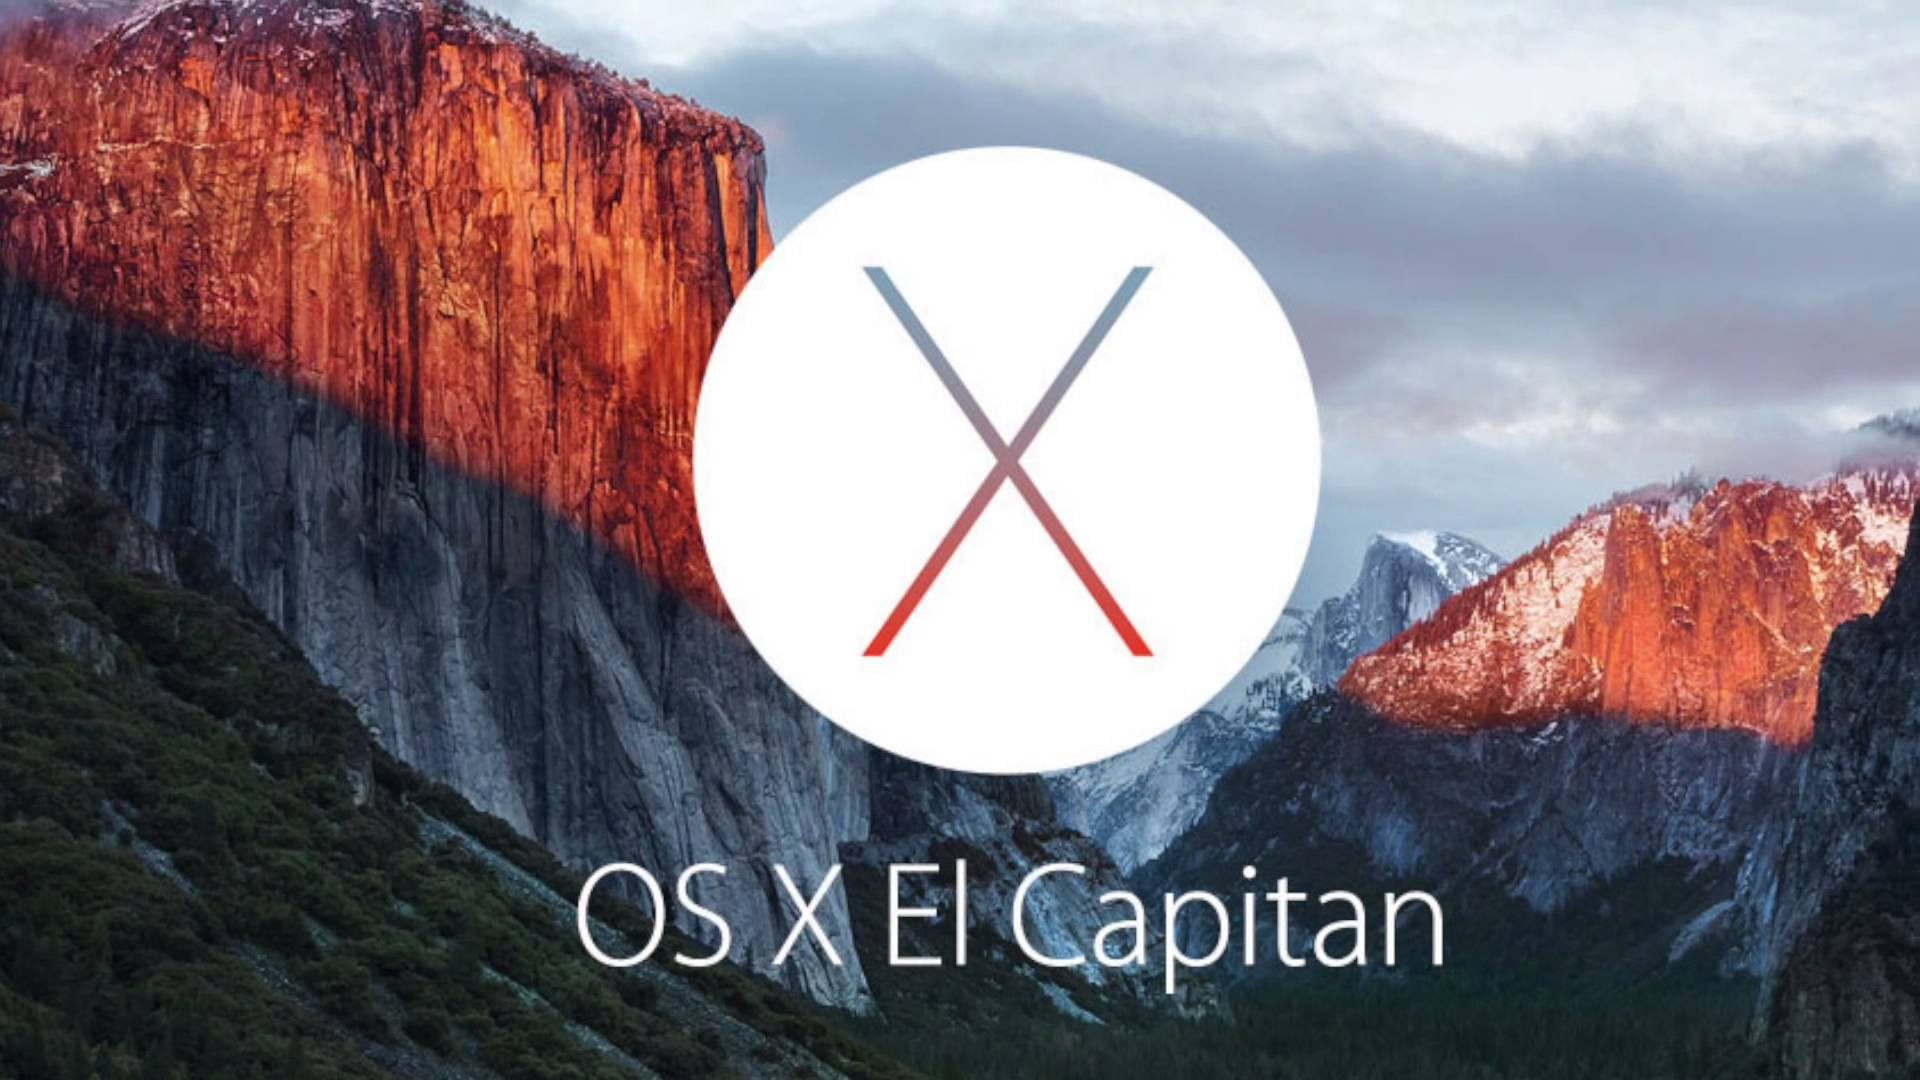 4 Common El Capitan Problems (and How to Fix Them)